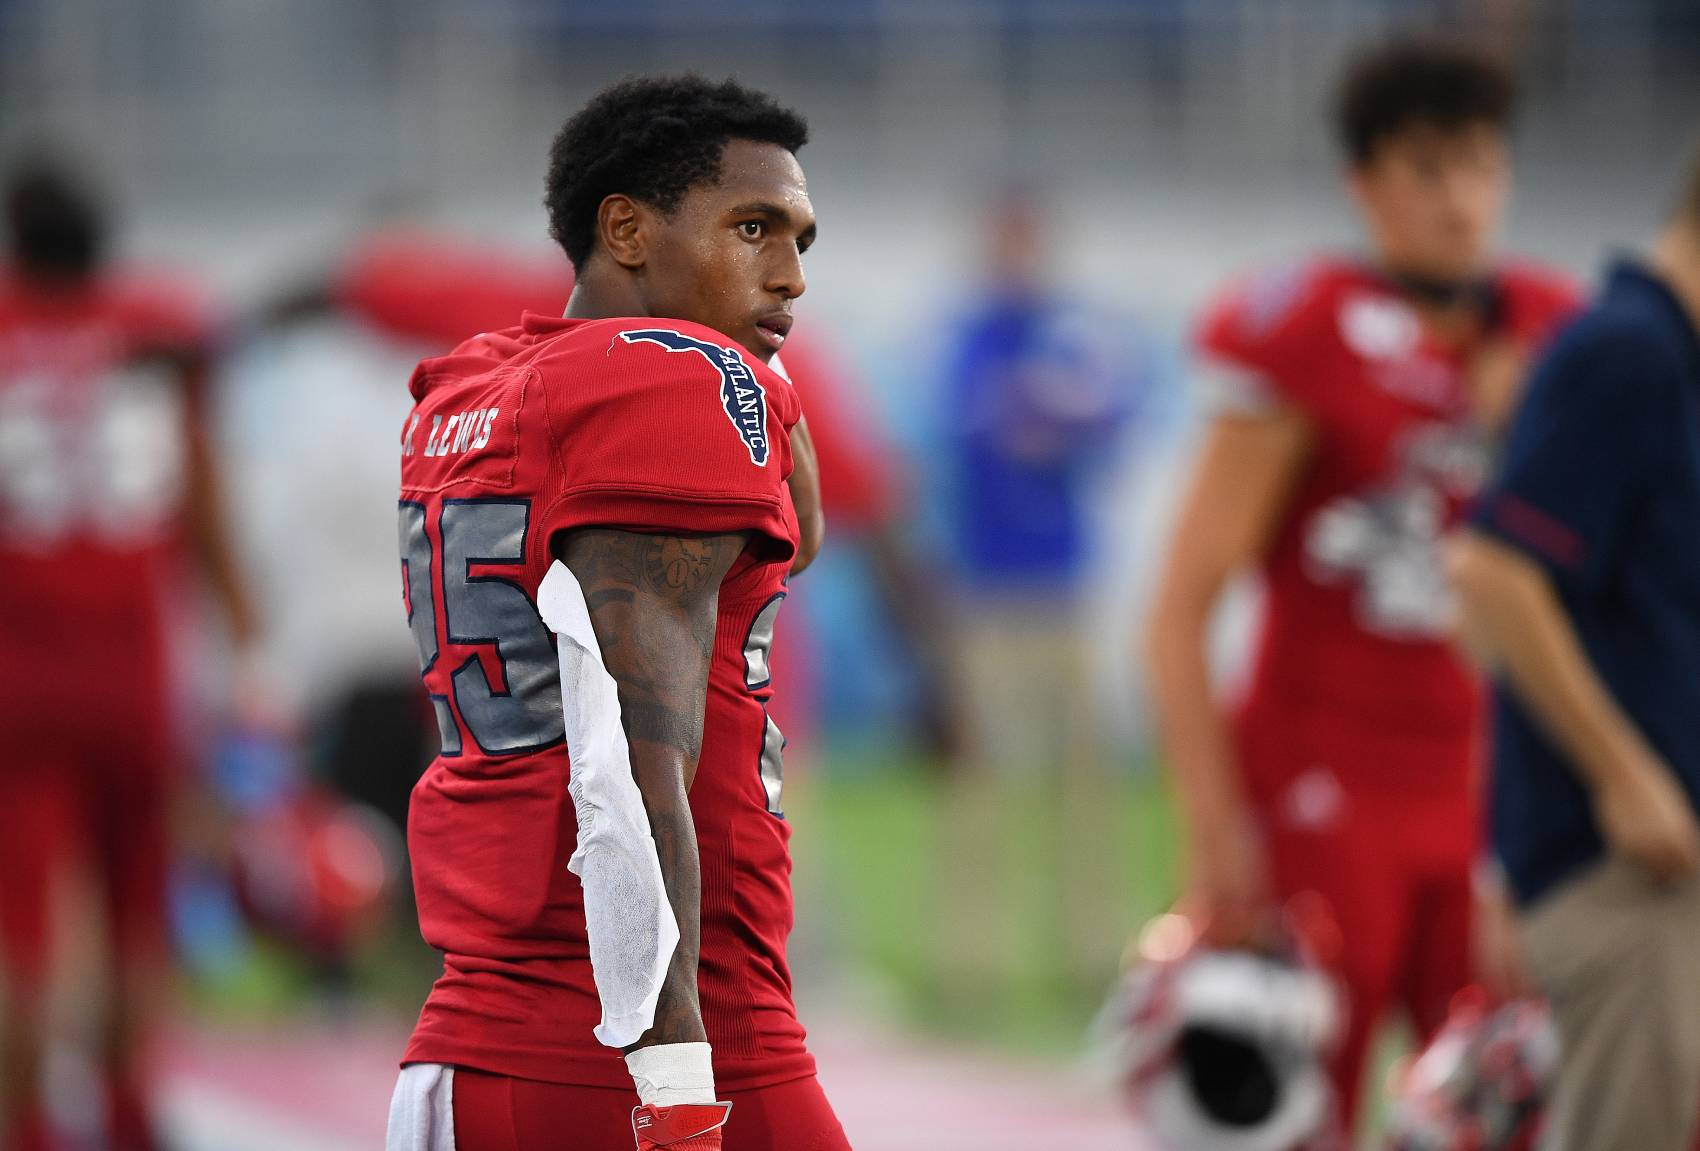 Rahsaan Lewis, the son of NFL legend Ray Lewis, could be headed to his third school in three years. Lewis played at Florida Atlantic last season.